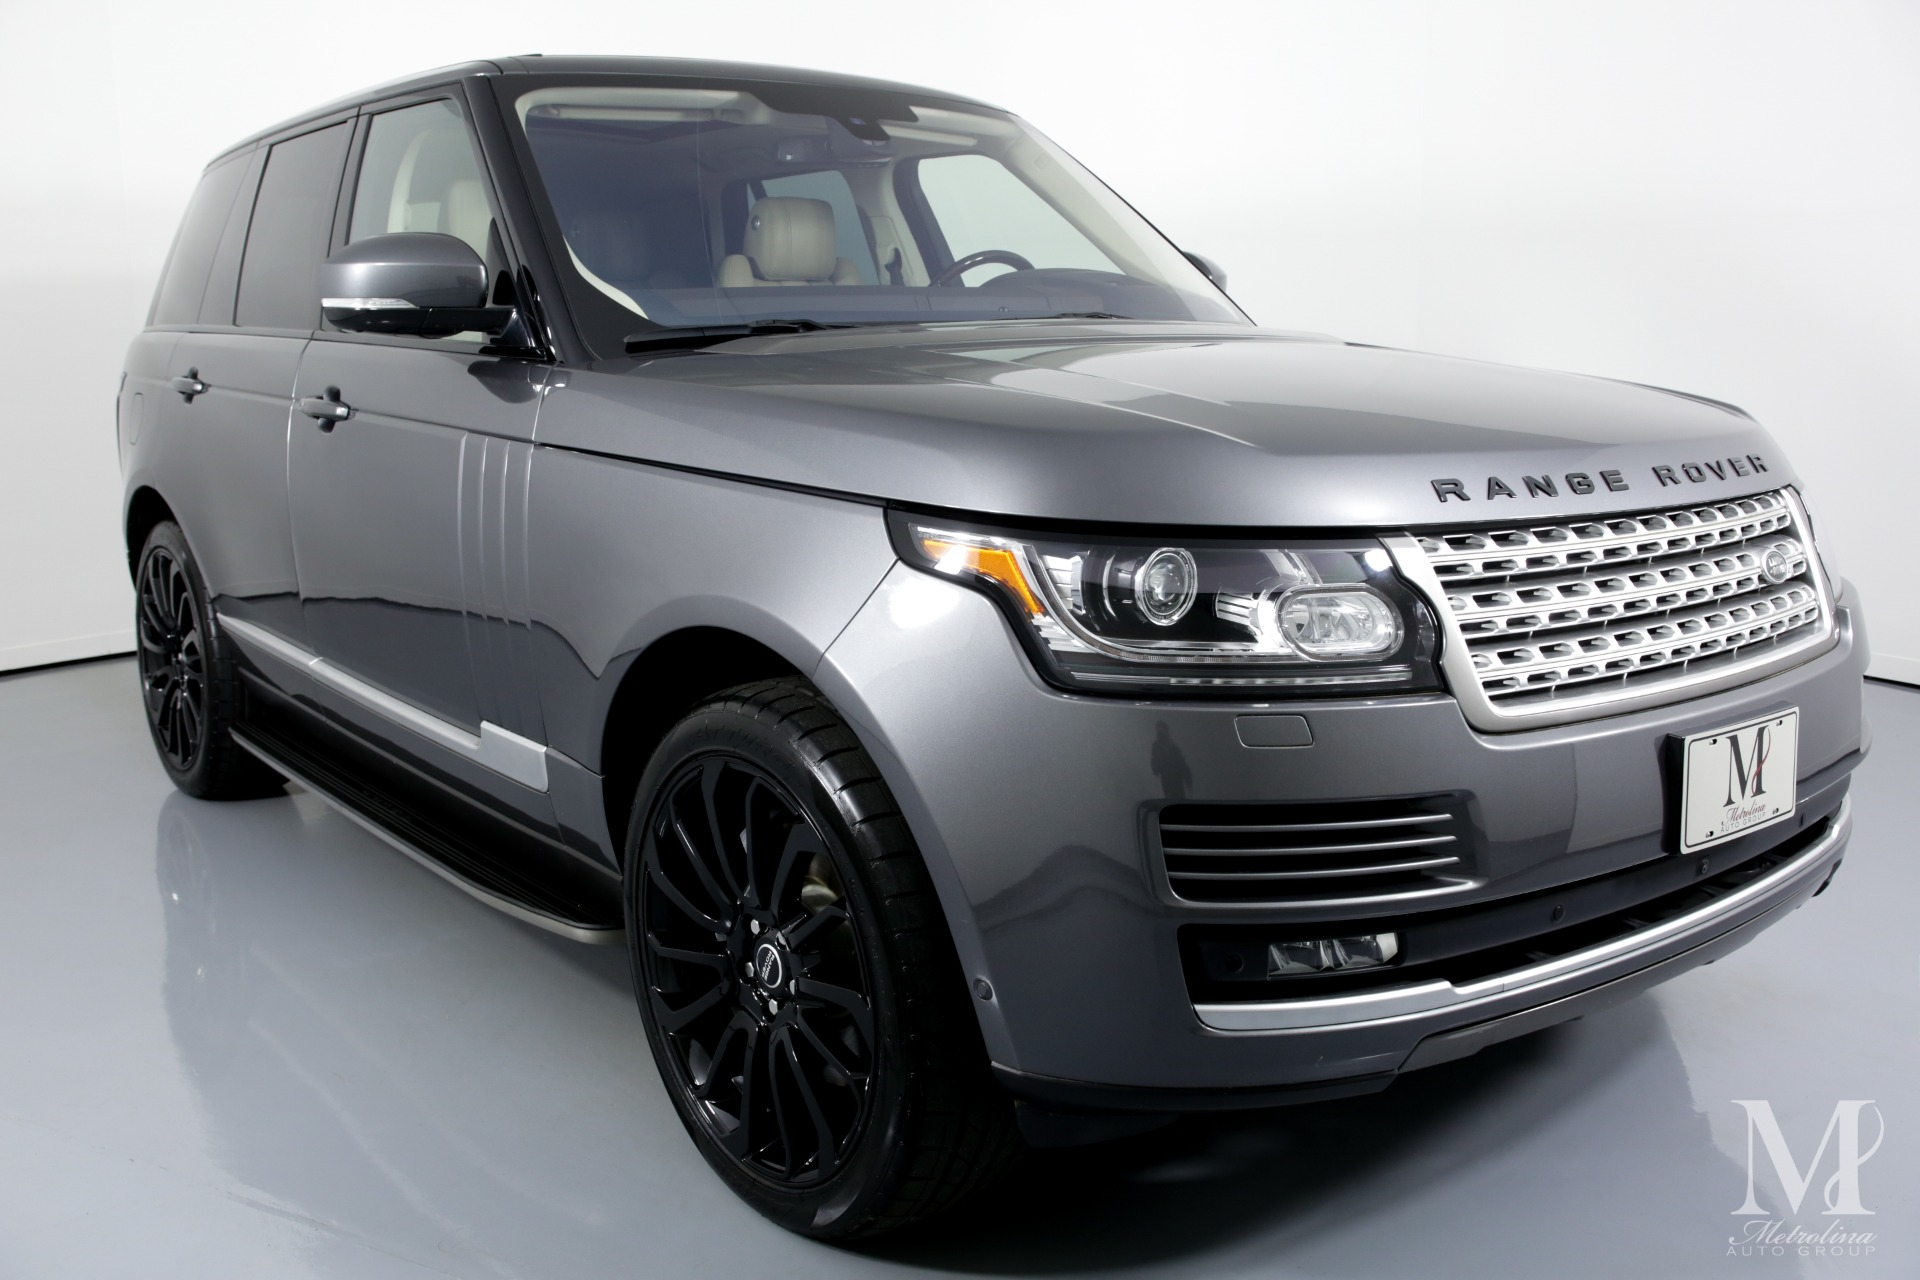 Used 2016 Land Rover Range Rover HSE AWD 4dr SUV for sale Sold at Metrolina Auto Group in Charlotte NC 28217 - 2